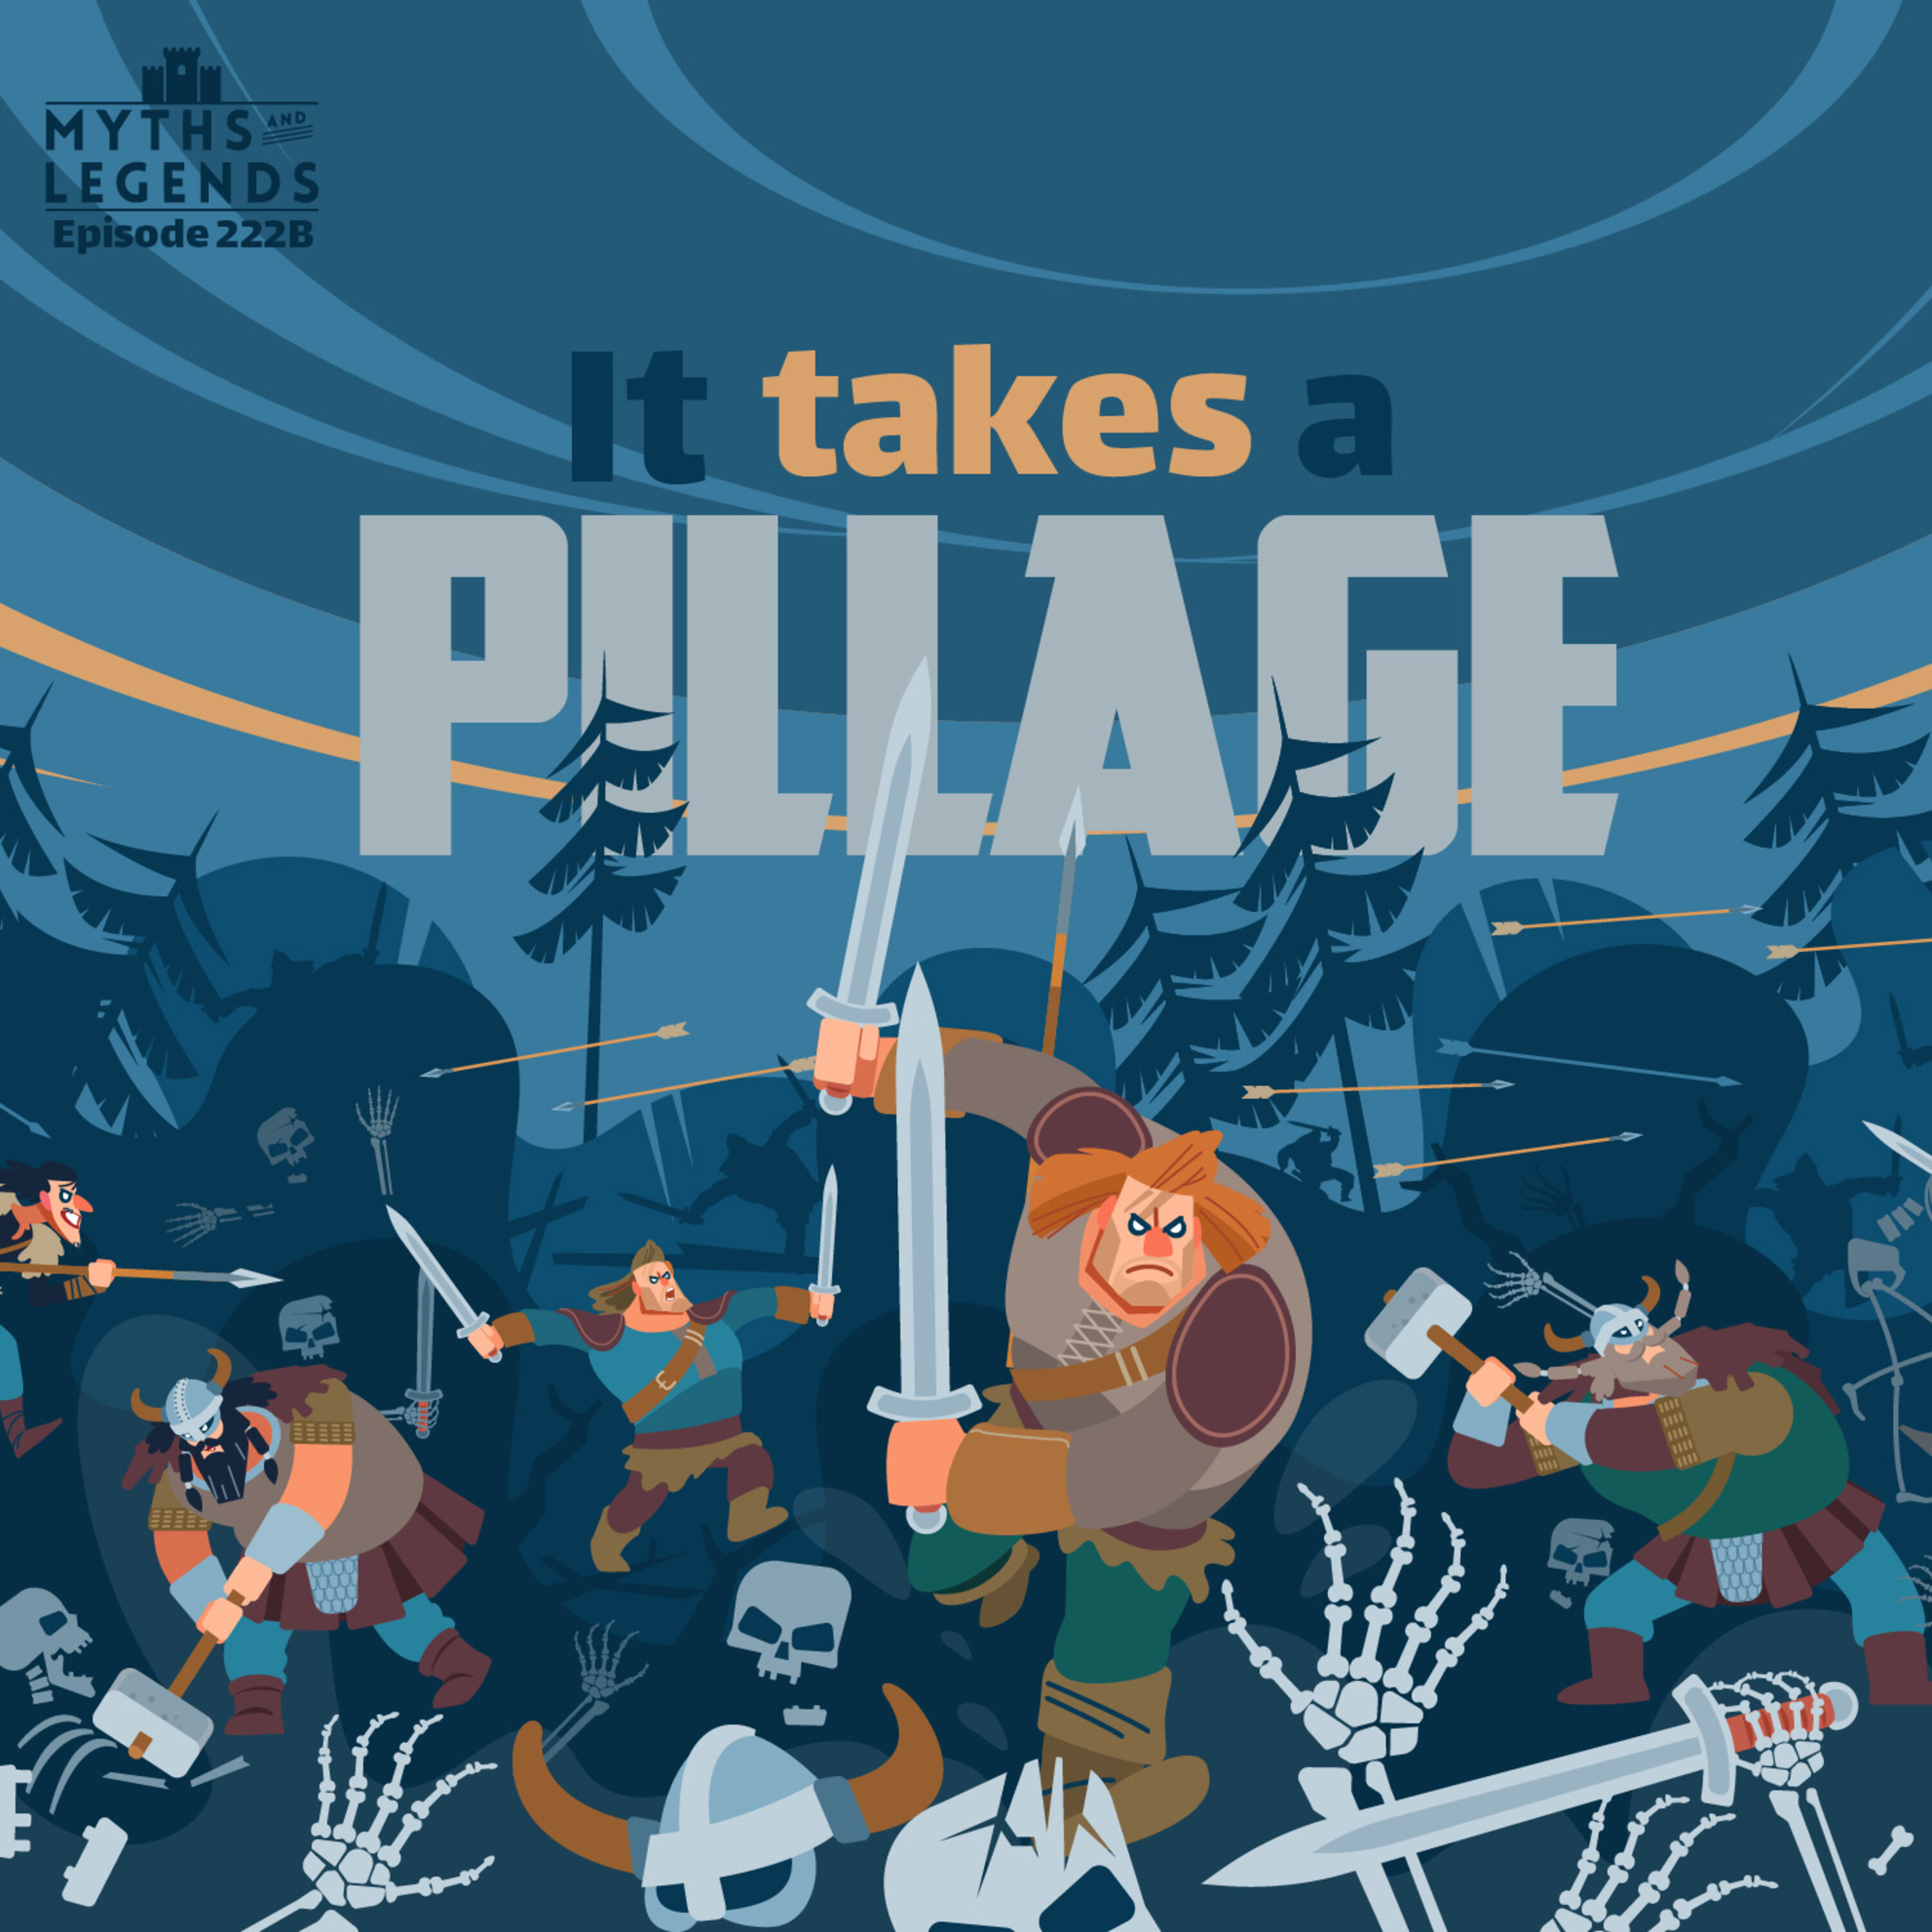 222B-Norse Legends: It Takes a Pillage